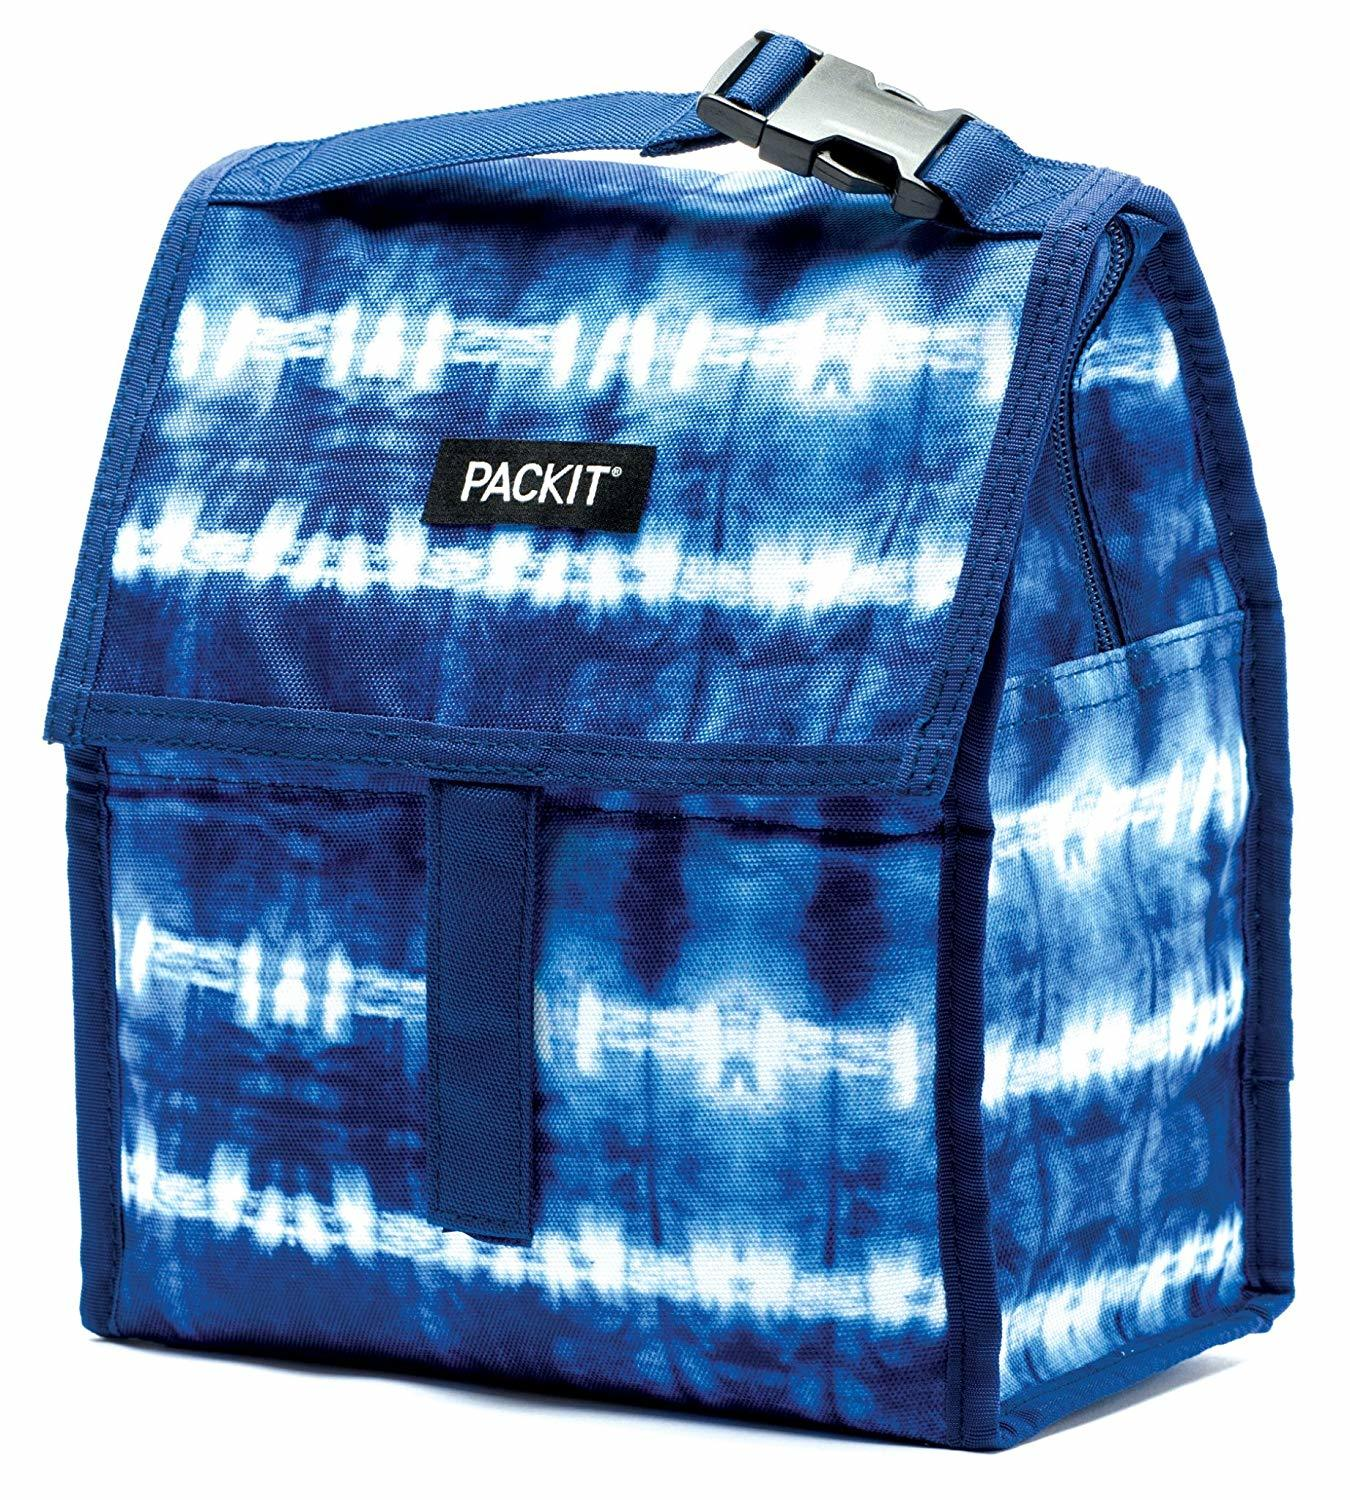 packit tie dye lunchbox on white background